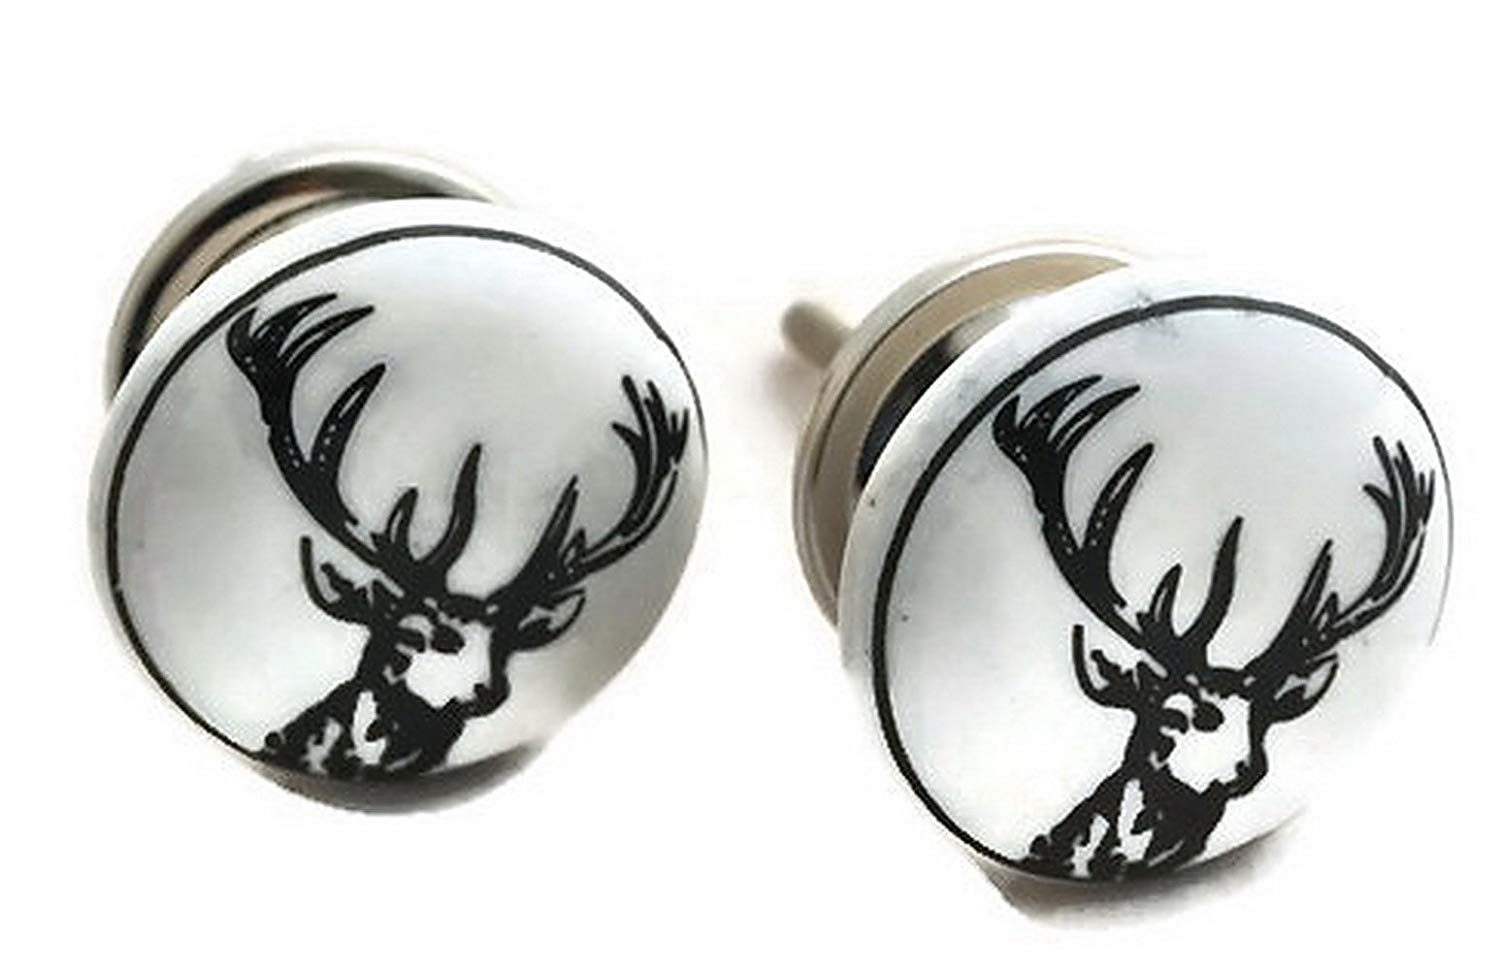 StarZebra Set of 2 - Handmade Hand-painted Ceramic Knobs & Pulls - Decorative Handles for Cabinets/Dressers/Drawers - Home Decor - Reindeer